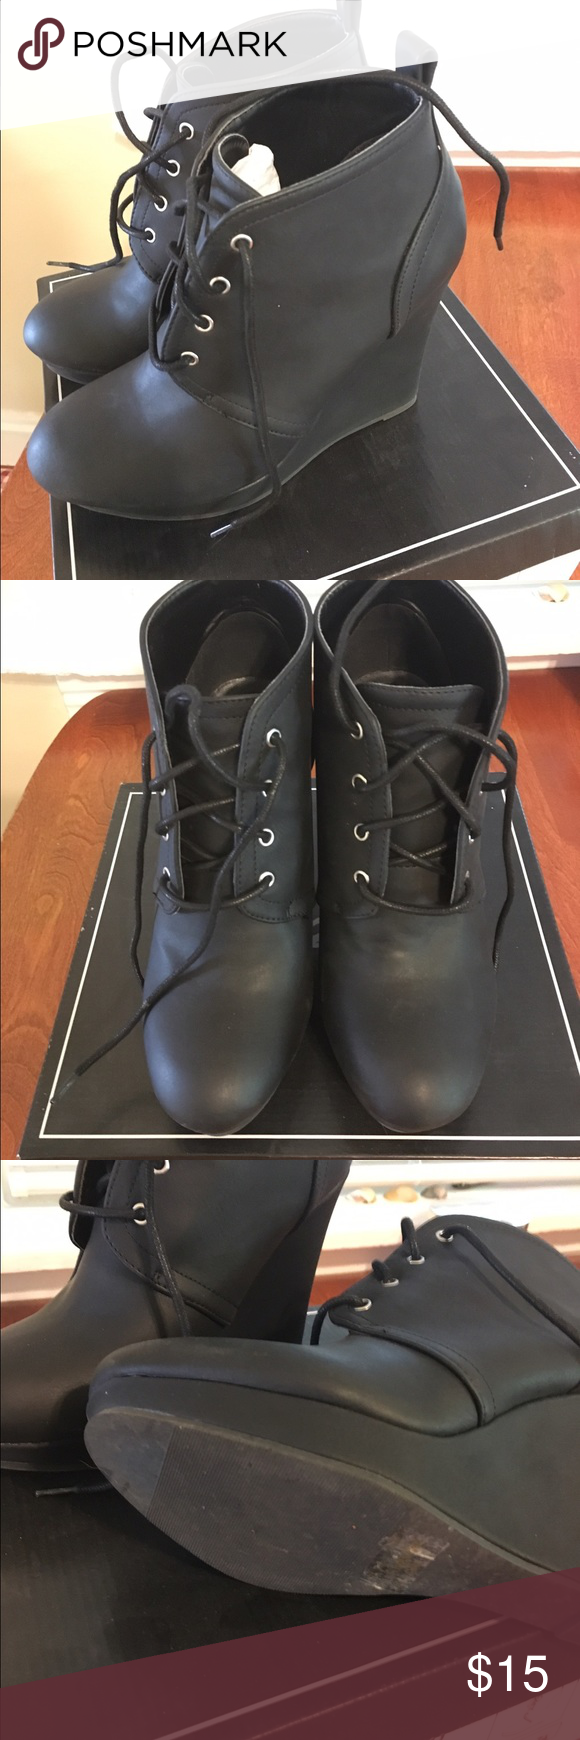 Qupid black faux leather lace up boot Worn once black faux leather lace up tall wedge bootie. Qupid Shoes Ankle Boots & Booties